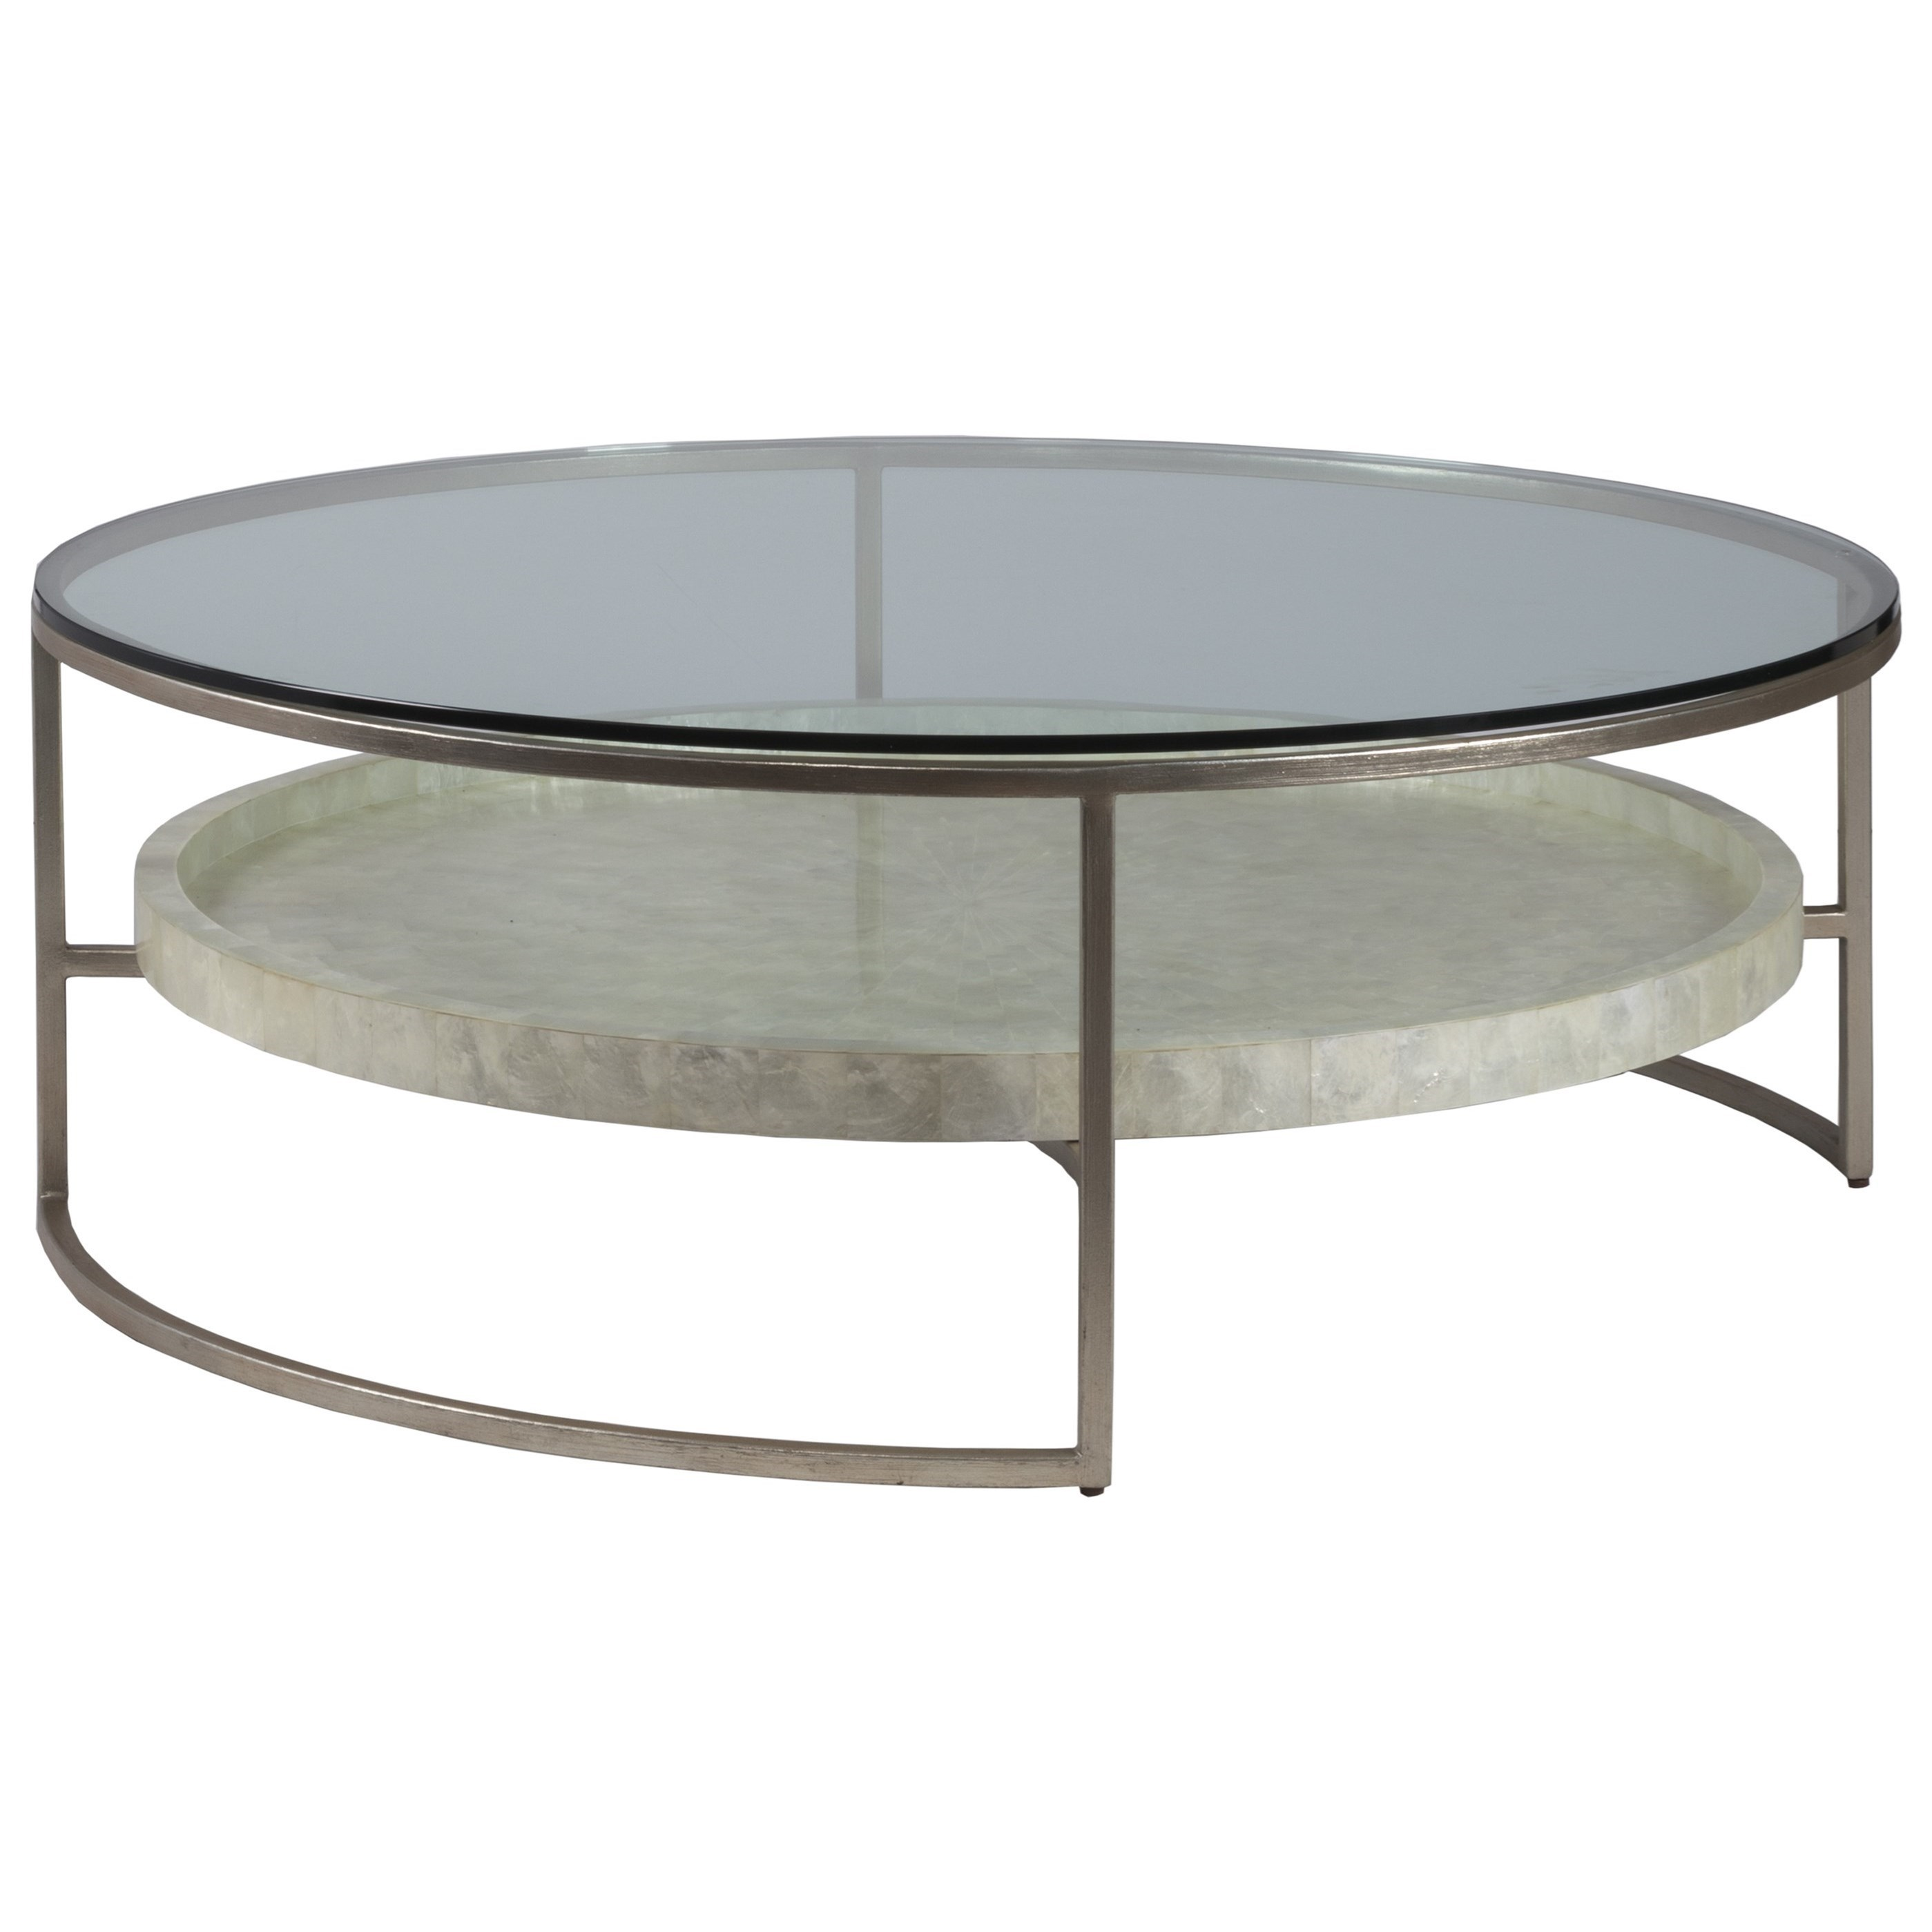 Cumulus Round  50 Inch Cocktail Table by Artistica at Baer's Furniture